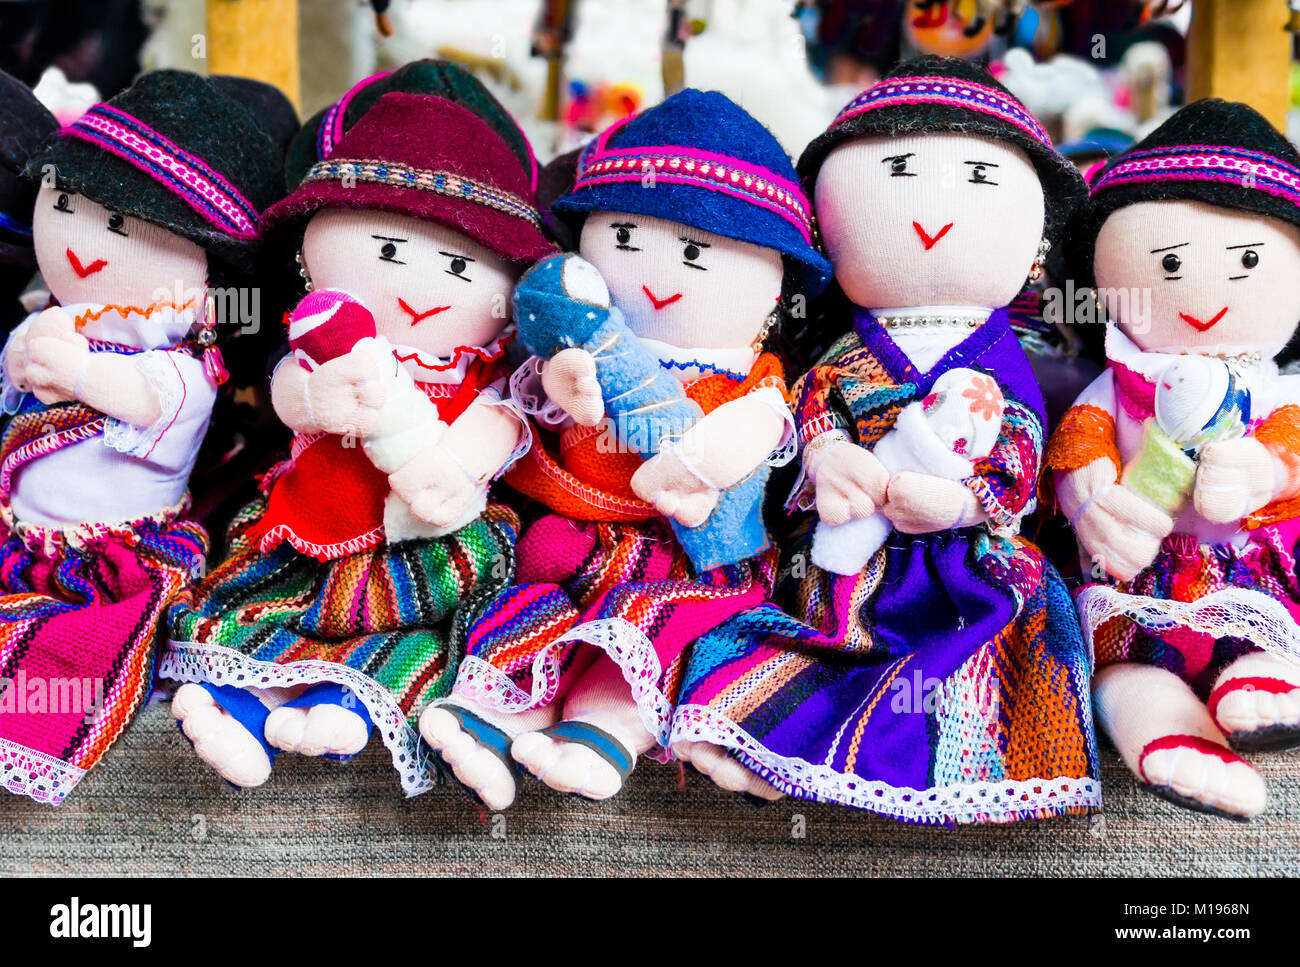 Dolls In Otavalo Market Ecuador High Resolution Stock Photography And Images Alamy